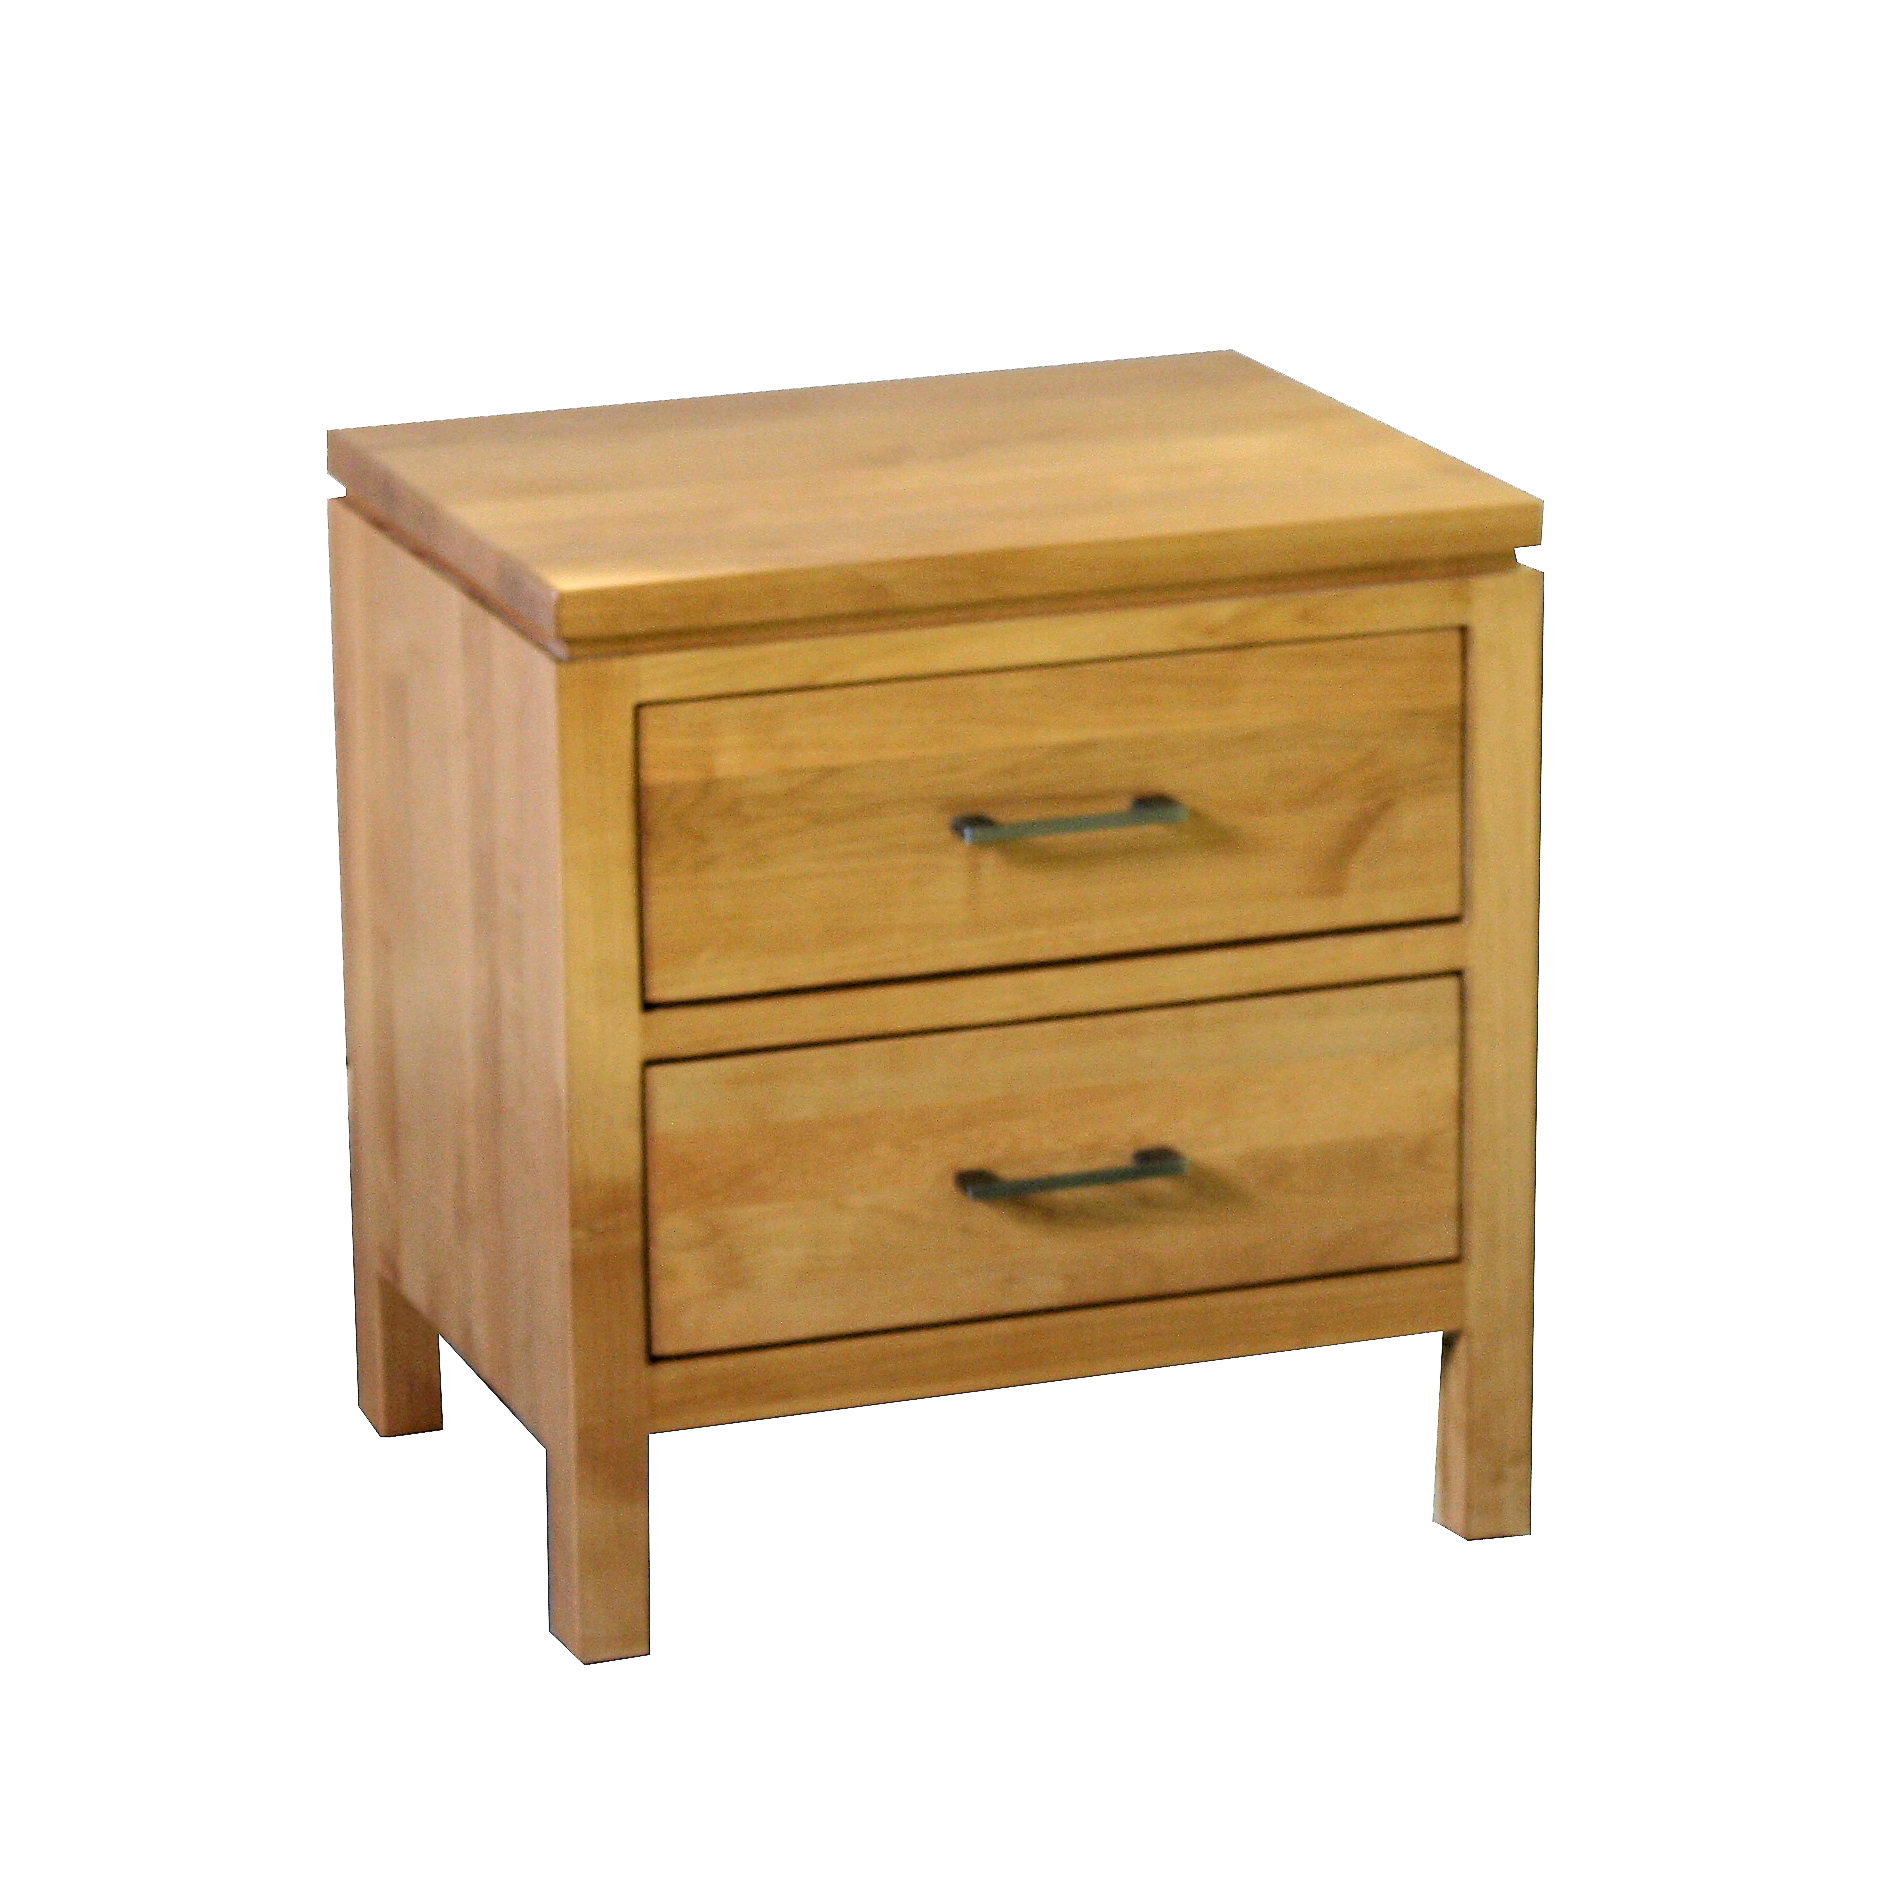 Nightstand - Archbold - 2 West 2 drawer nightstand - Finished.jpg